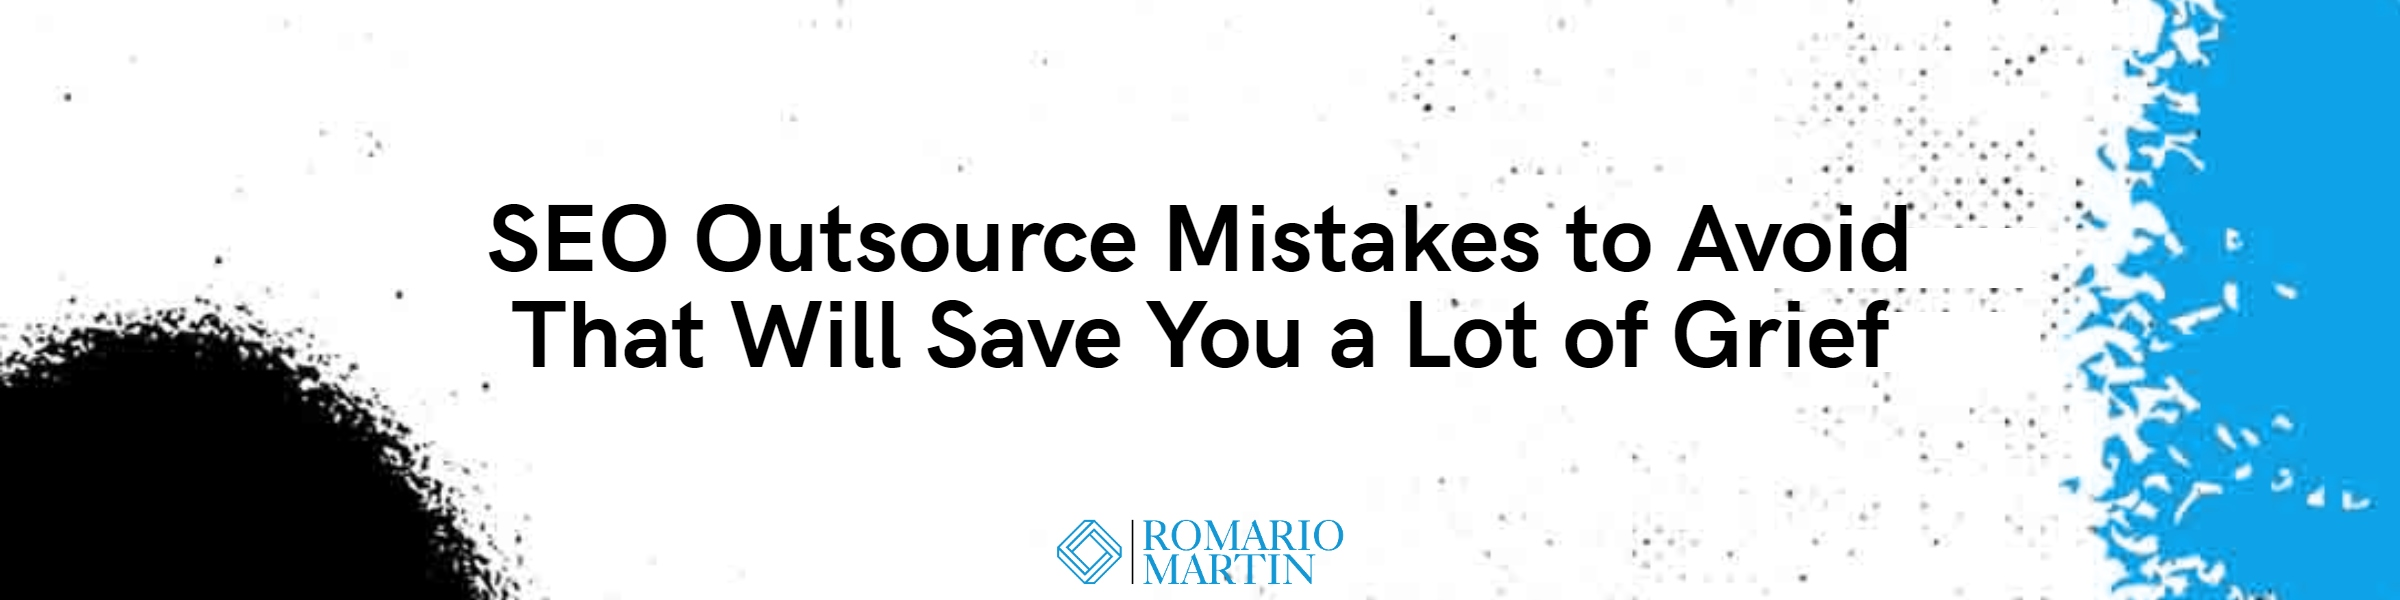 SEO Outsource Mistakes to Avoid That Will Save You a Lot of Grief